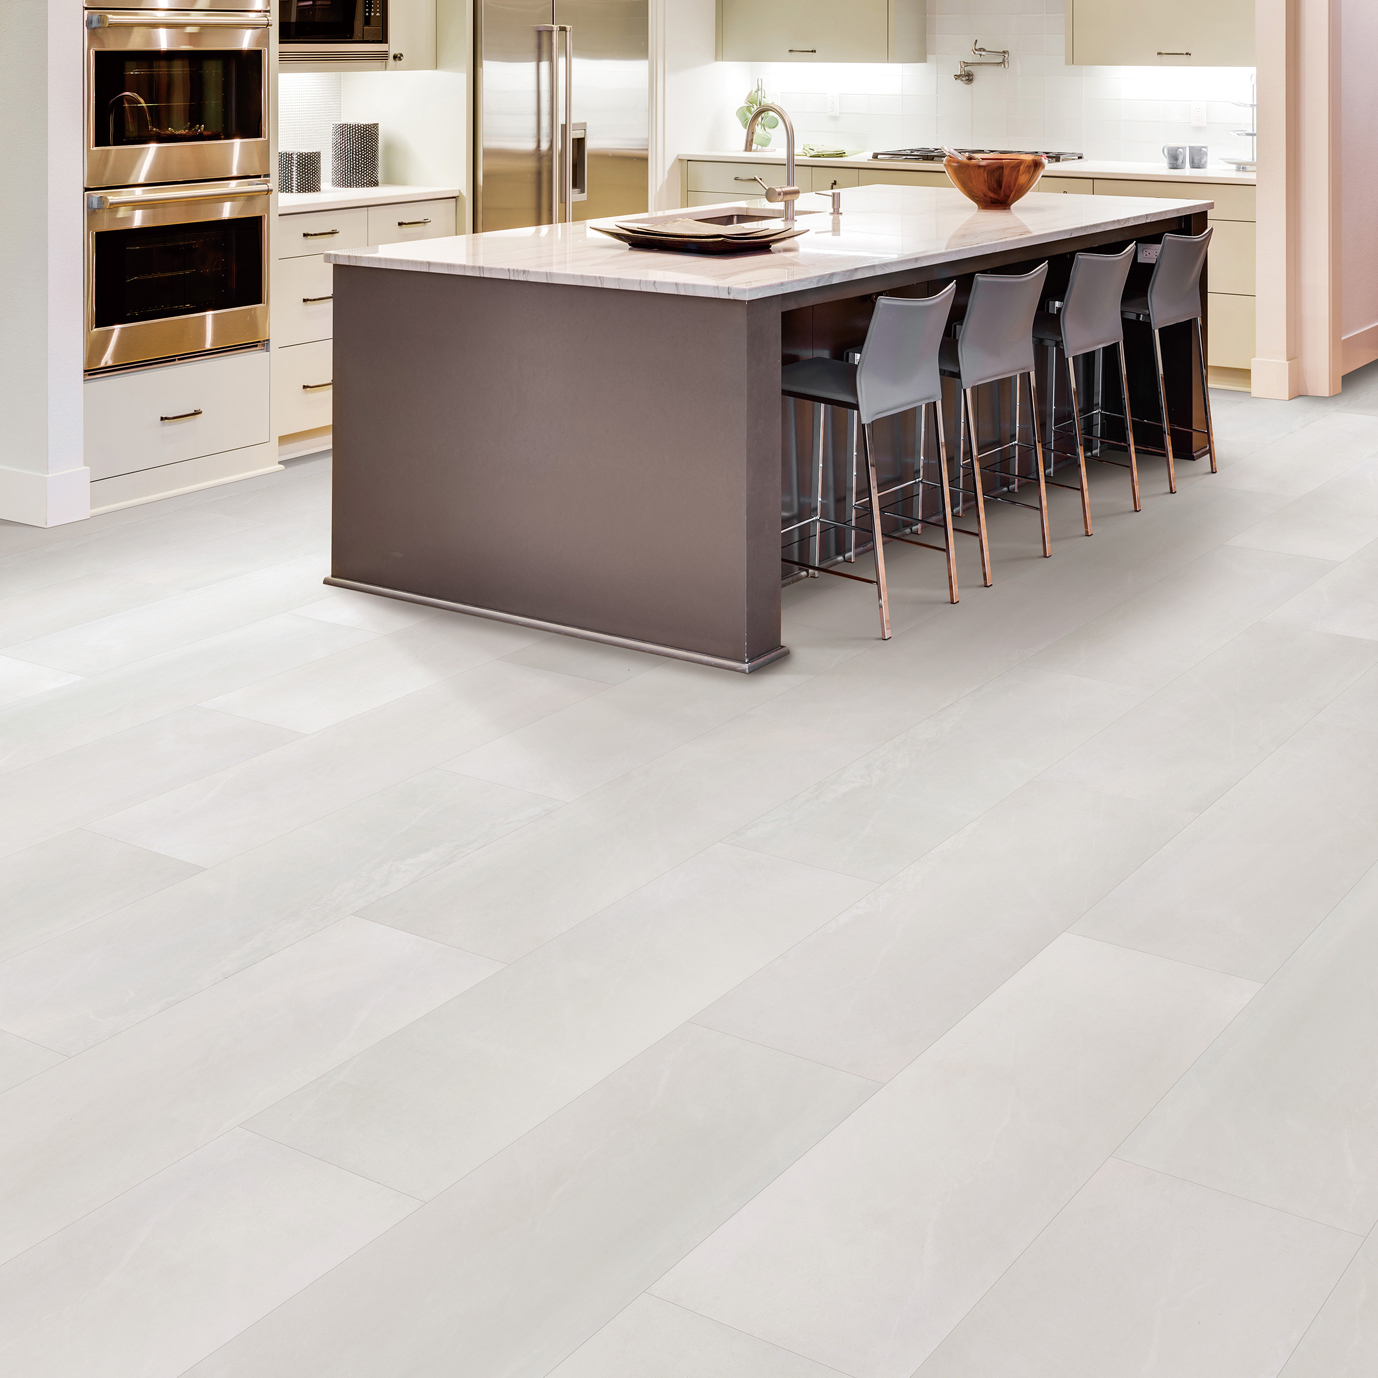 Next Floor - Expanse Tile - 536 303.jpg